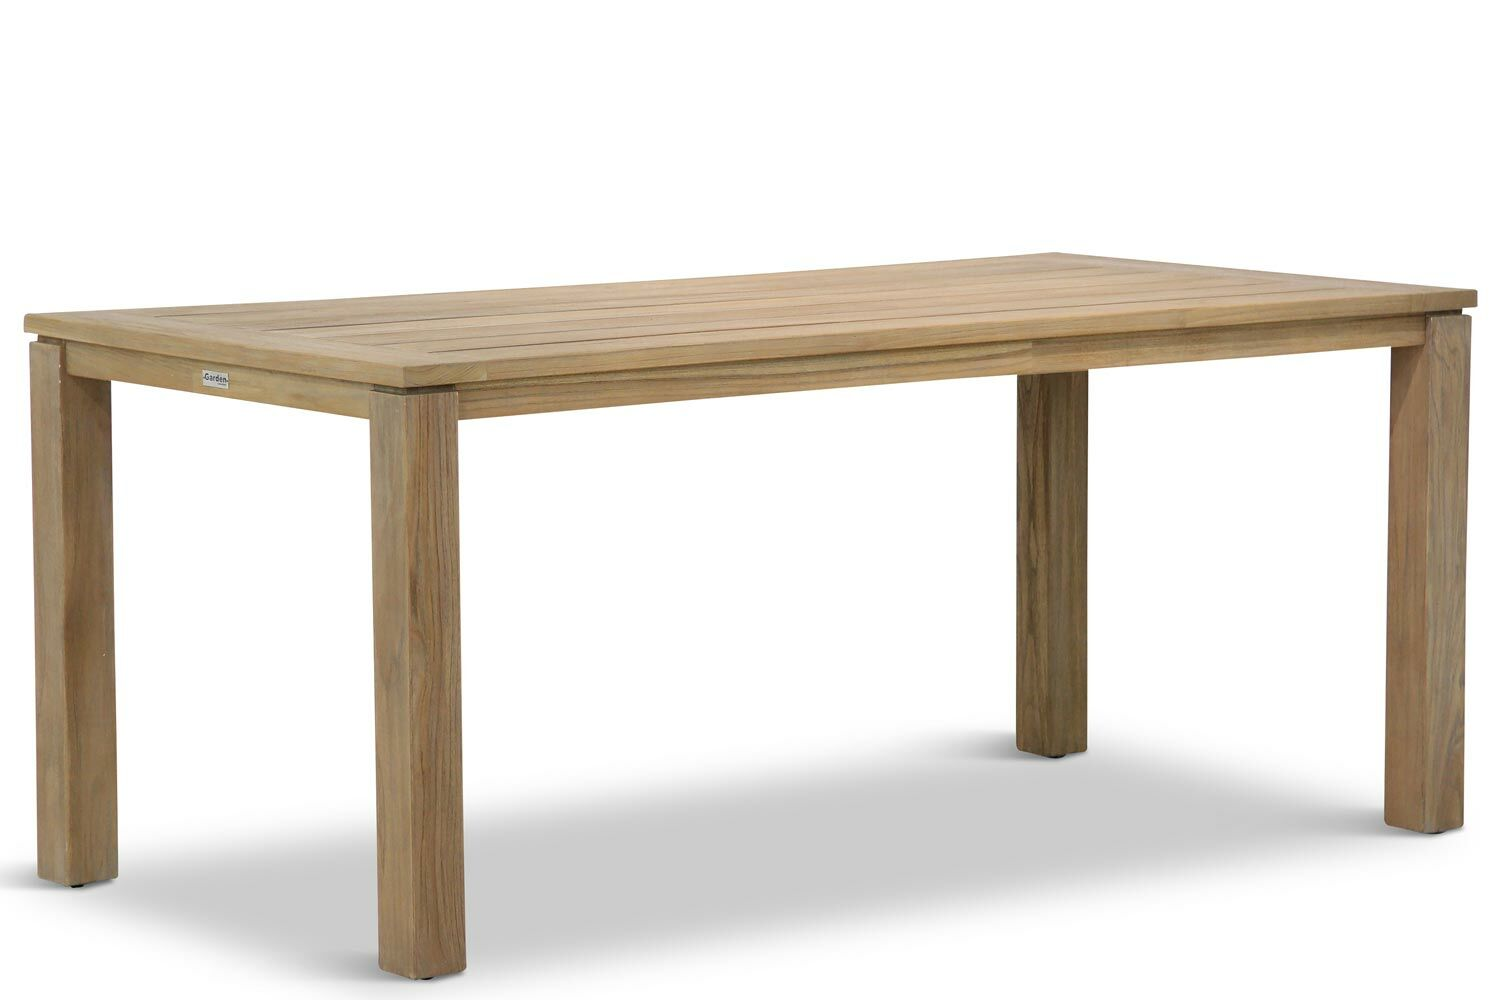 Garden Collections Bristol dining tuintafel 180 x 90 cm